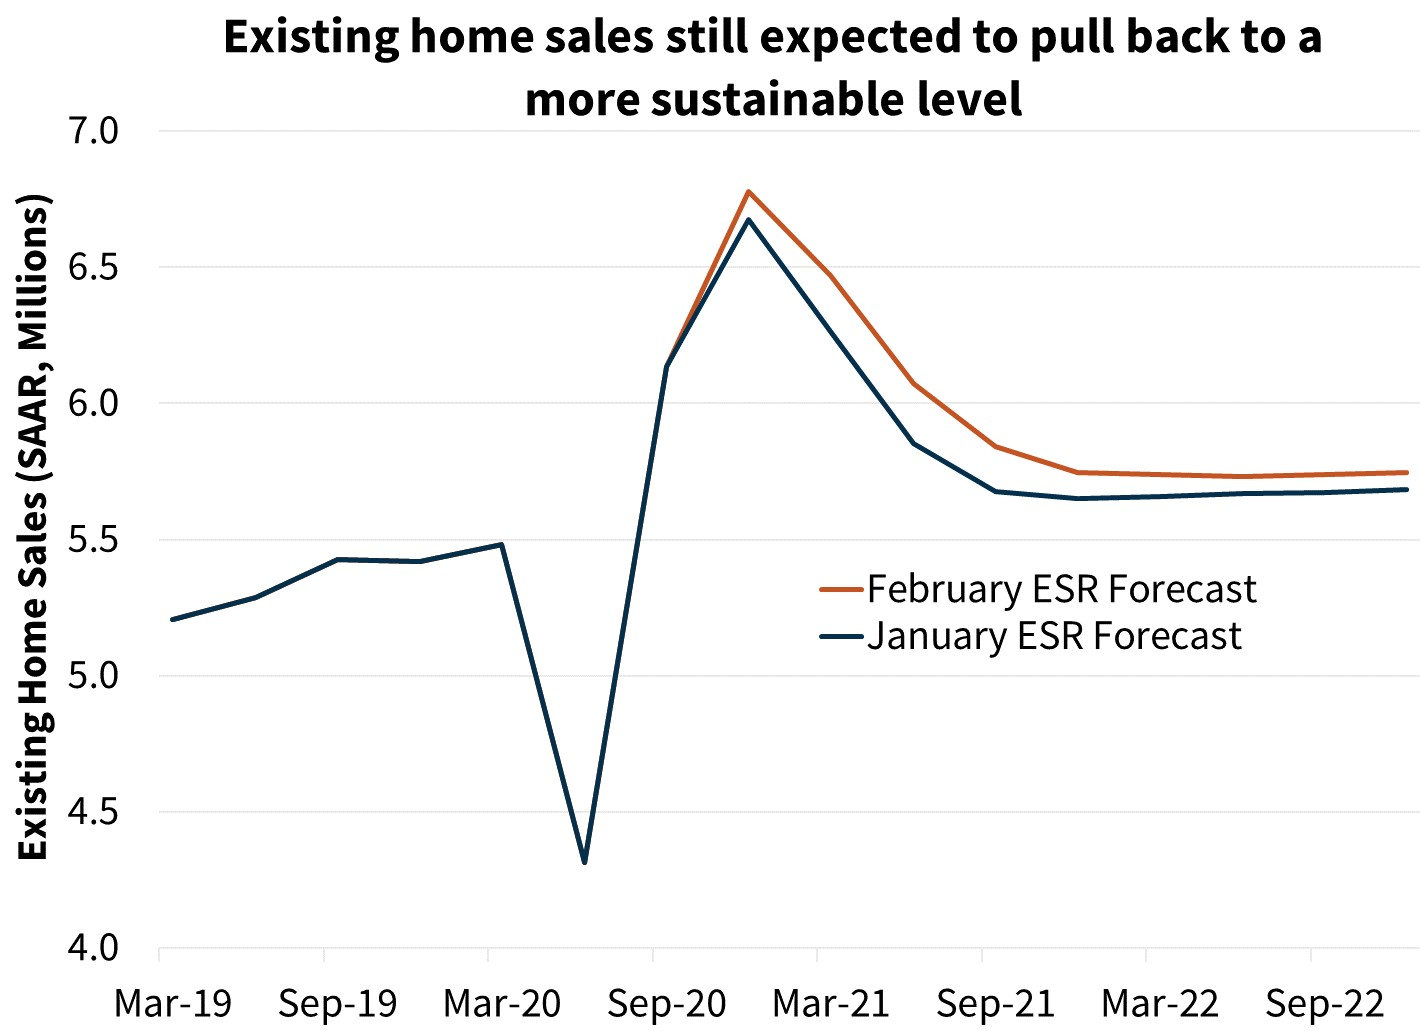 Existing home sales still expected to pull back to a more sustainable level